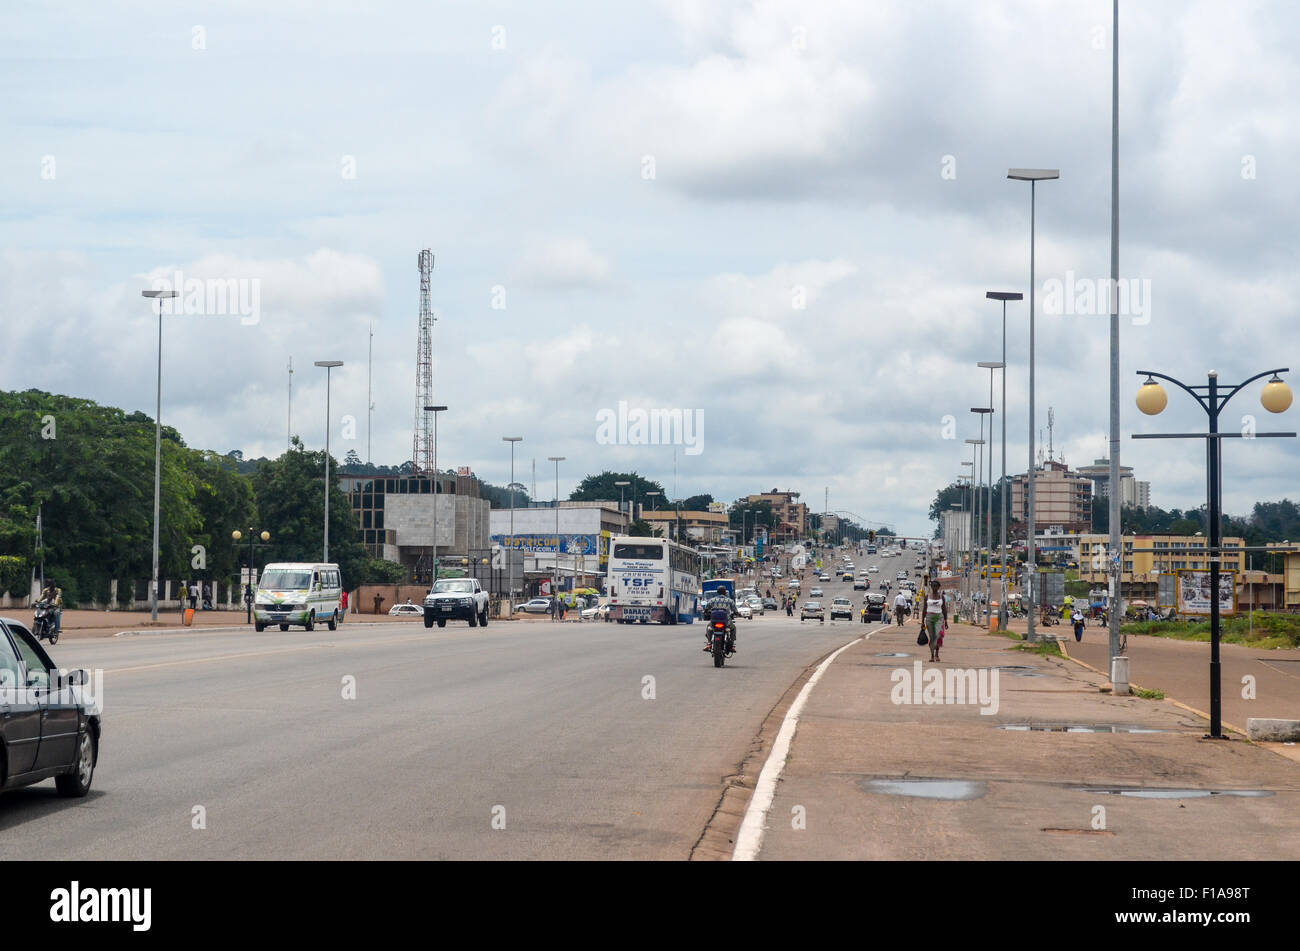 Highway in Yamoussoukro, Ivory Coast - Stock Image